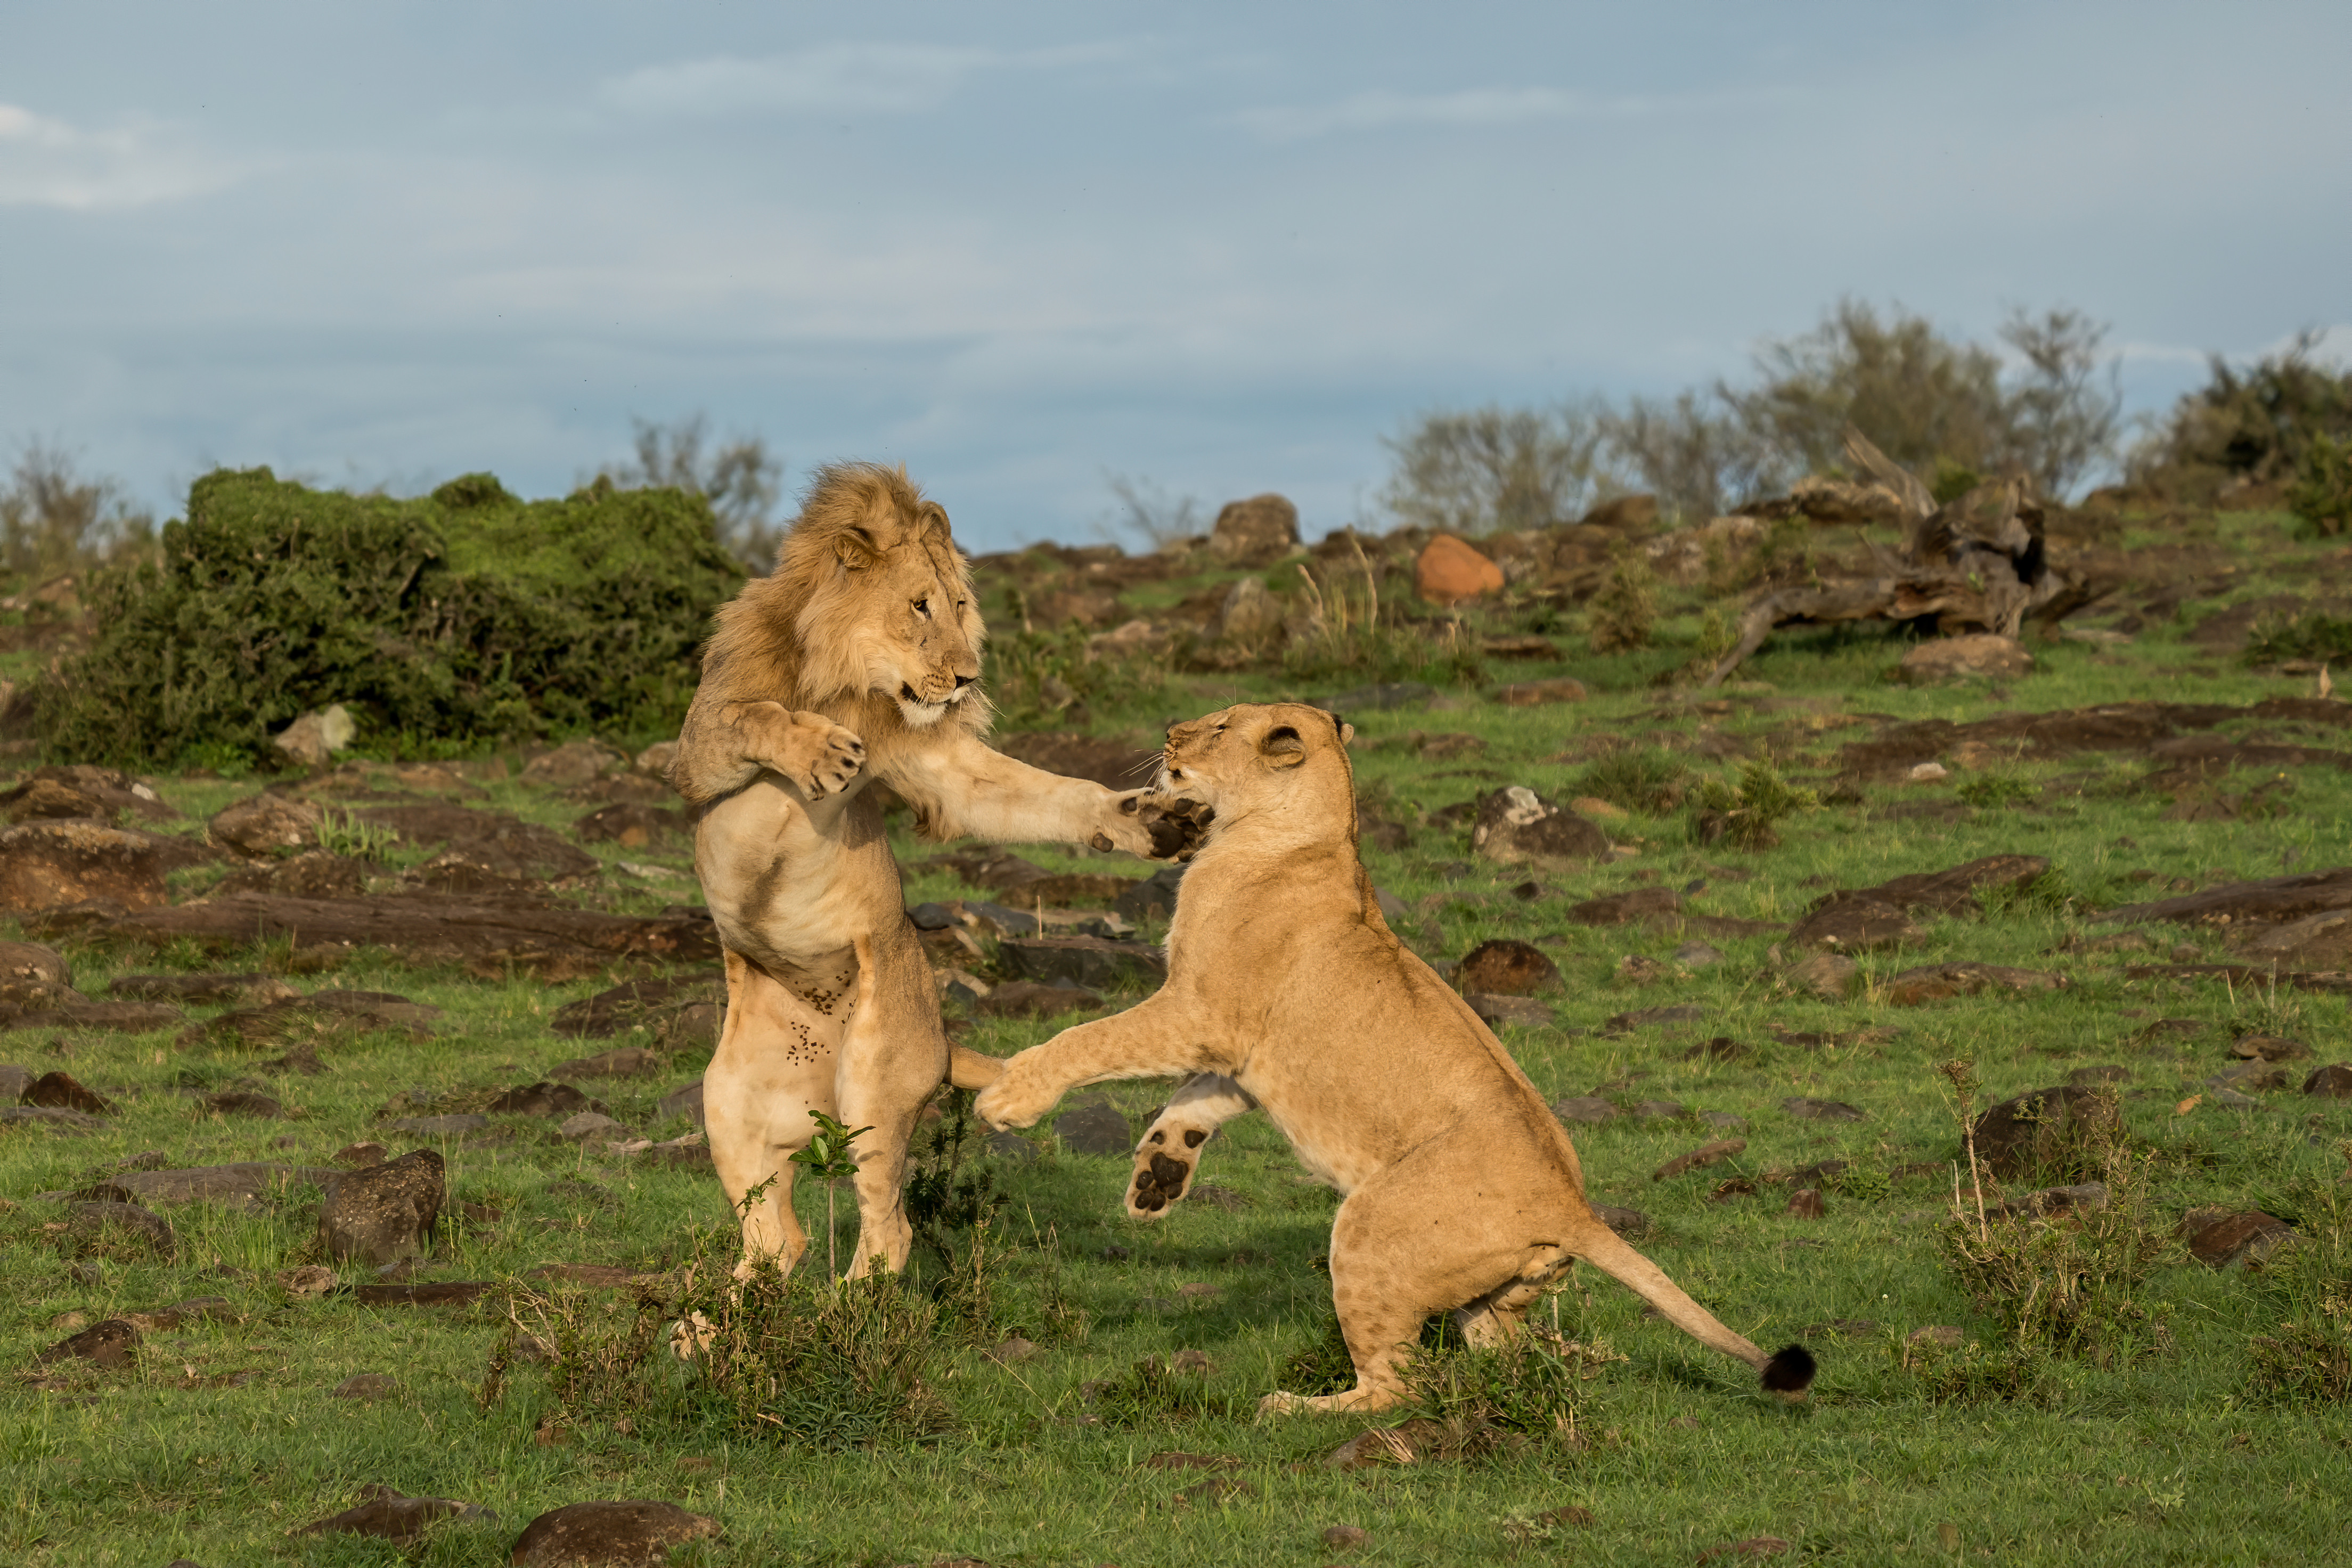 Photographer Kevin Rooney documented the scene in the Mara North Conservancy in November